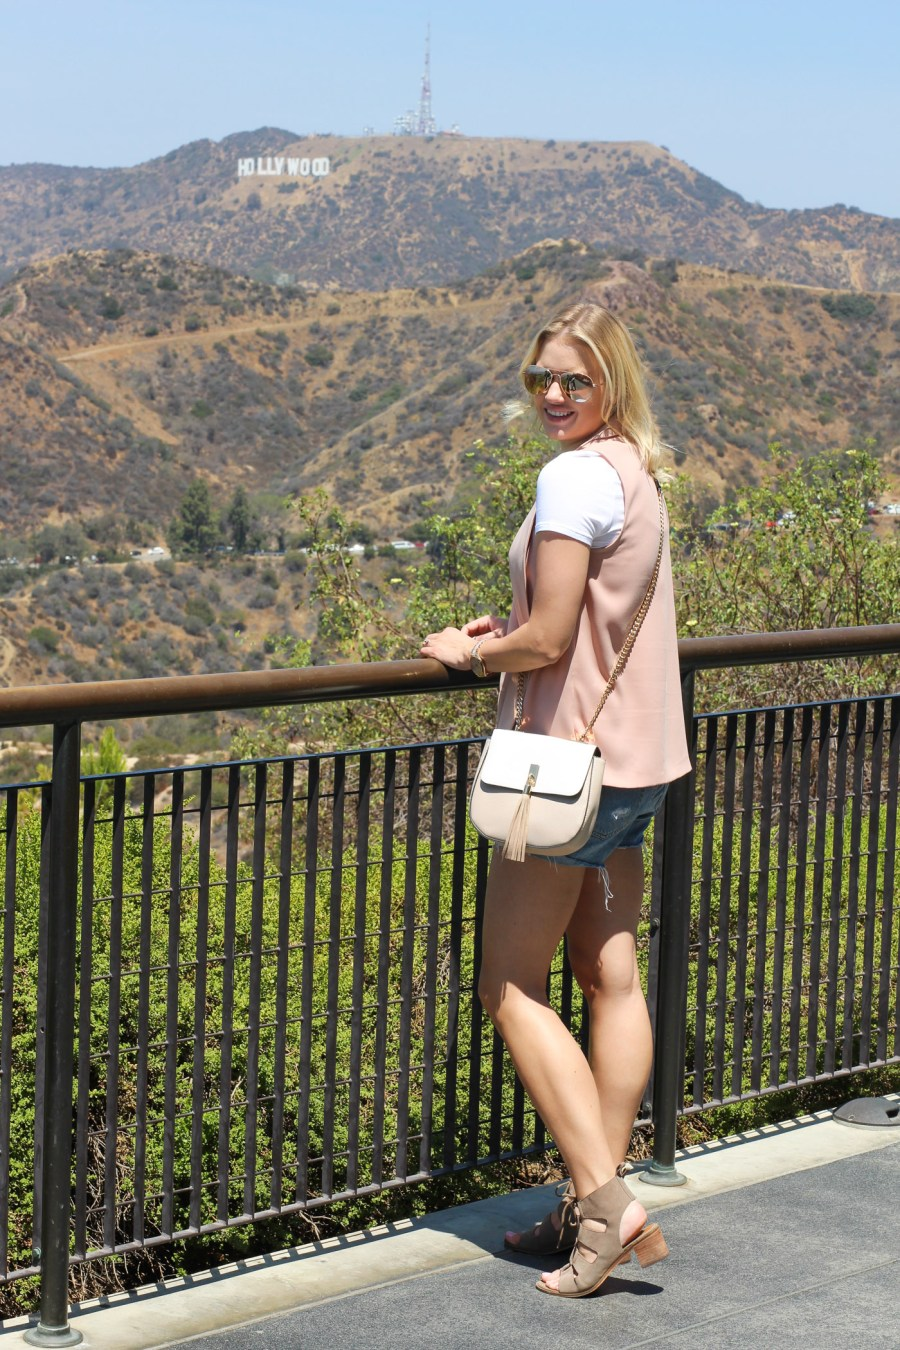 Los Angeles Travel Guide, 48 hours in LA, travel blog, Treats and Trends, hollywood sign